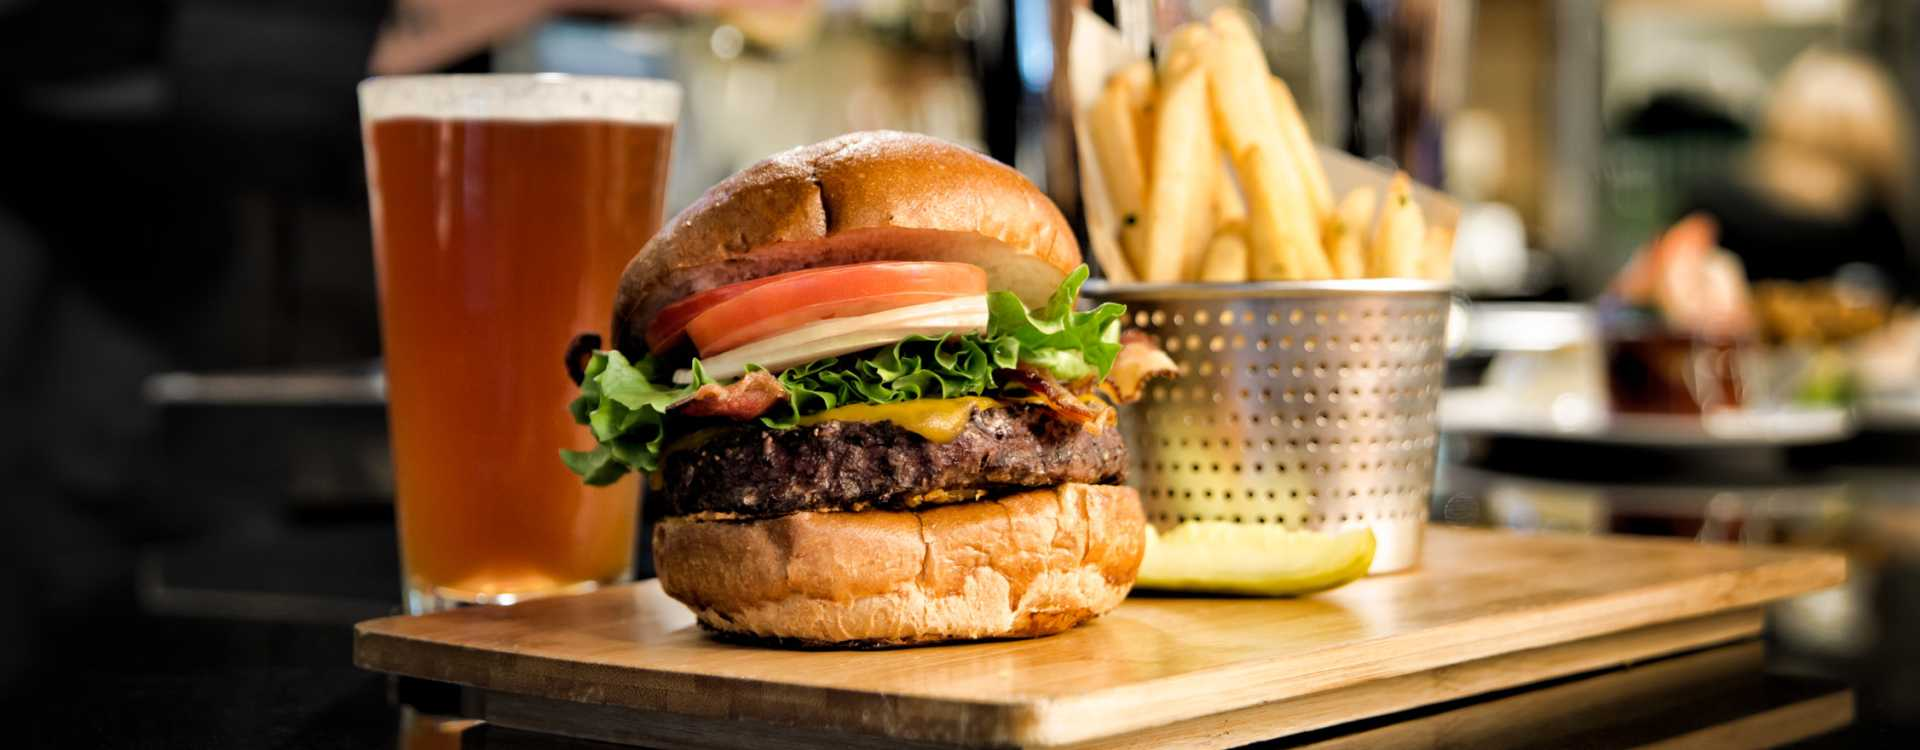 Delicious Burgers at DoubleTree by Hilton Hotel Seattle Airport